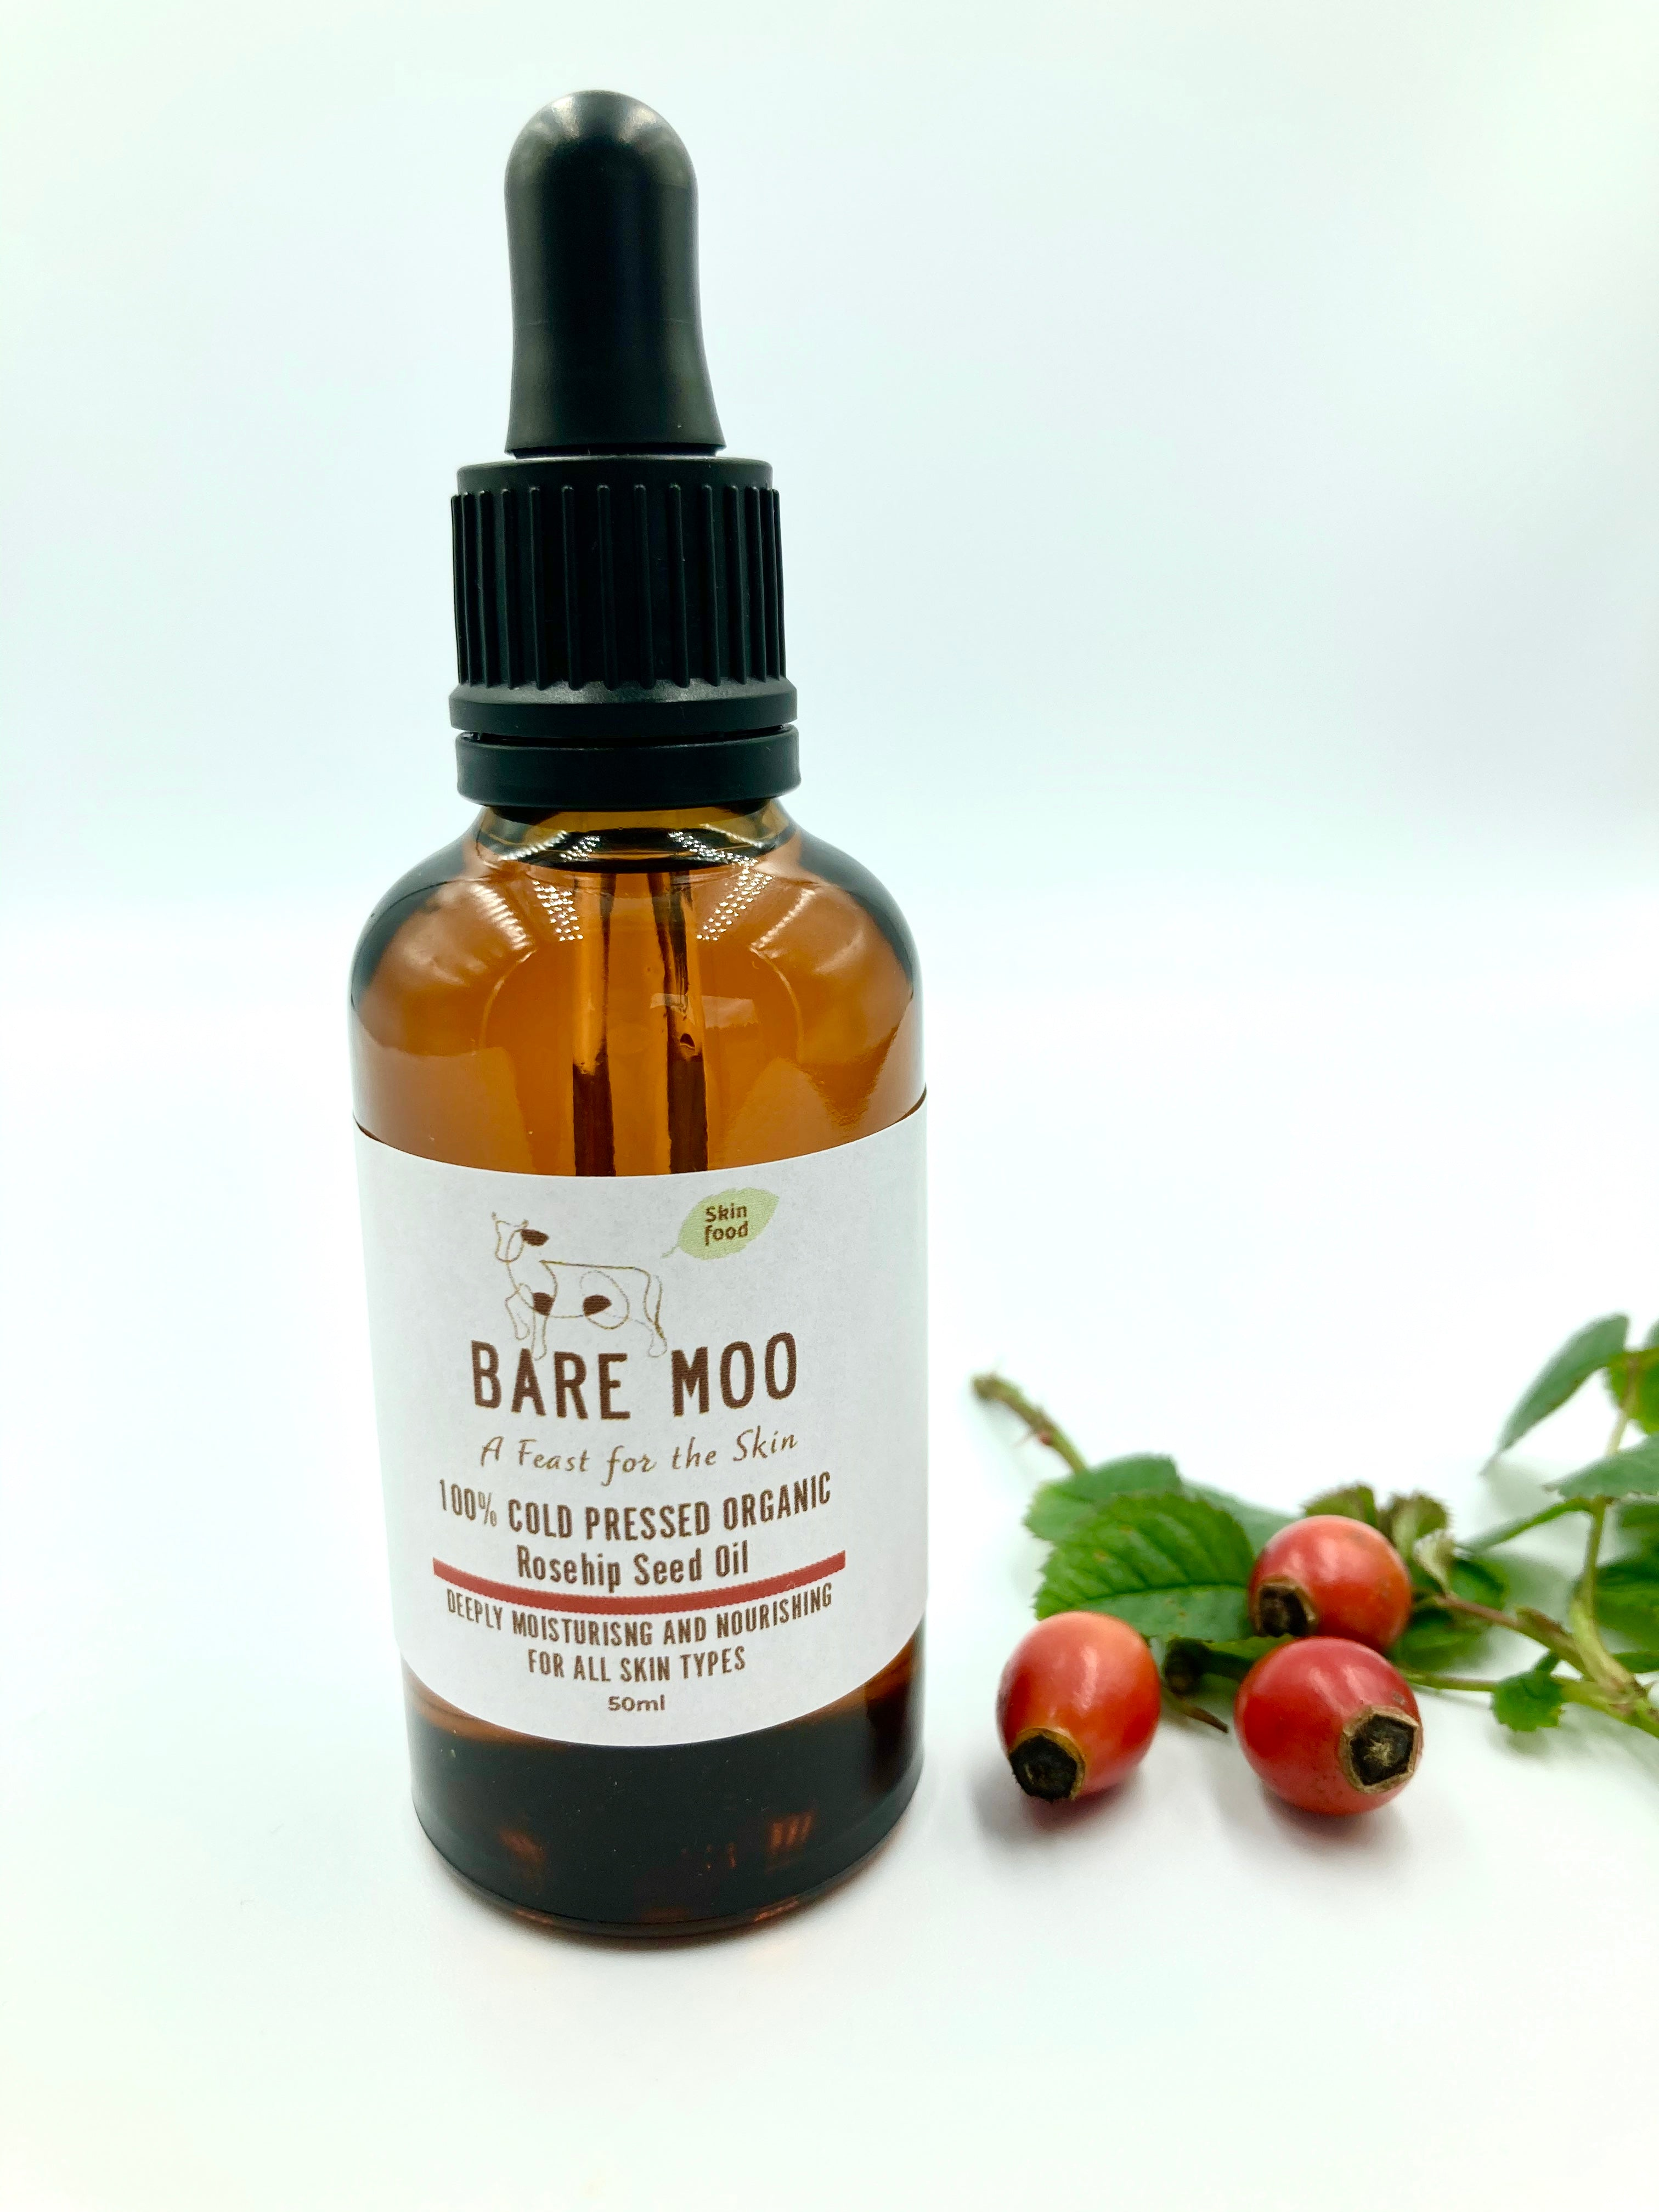 Cold Pressed Organic Rosehip Seed Oil